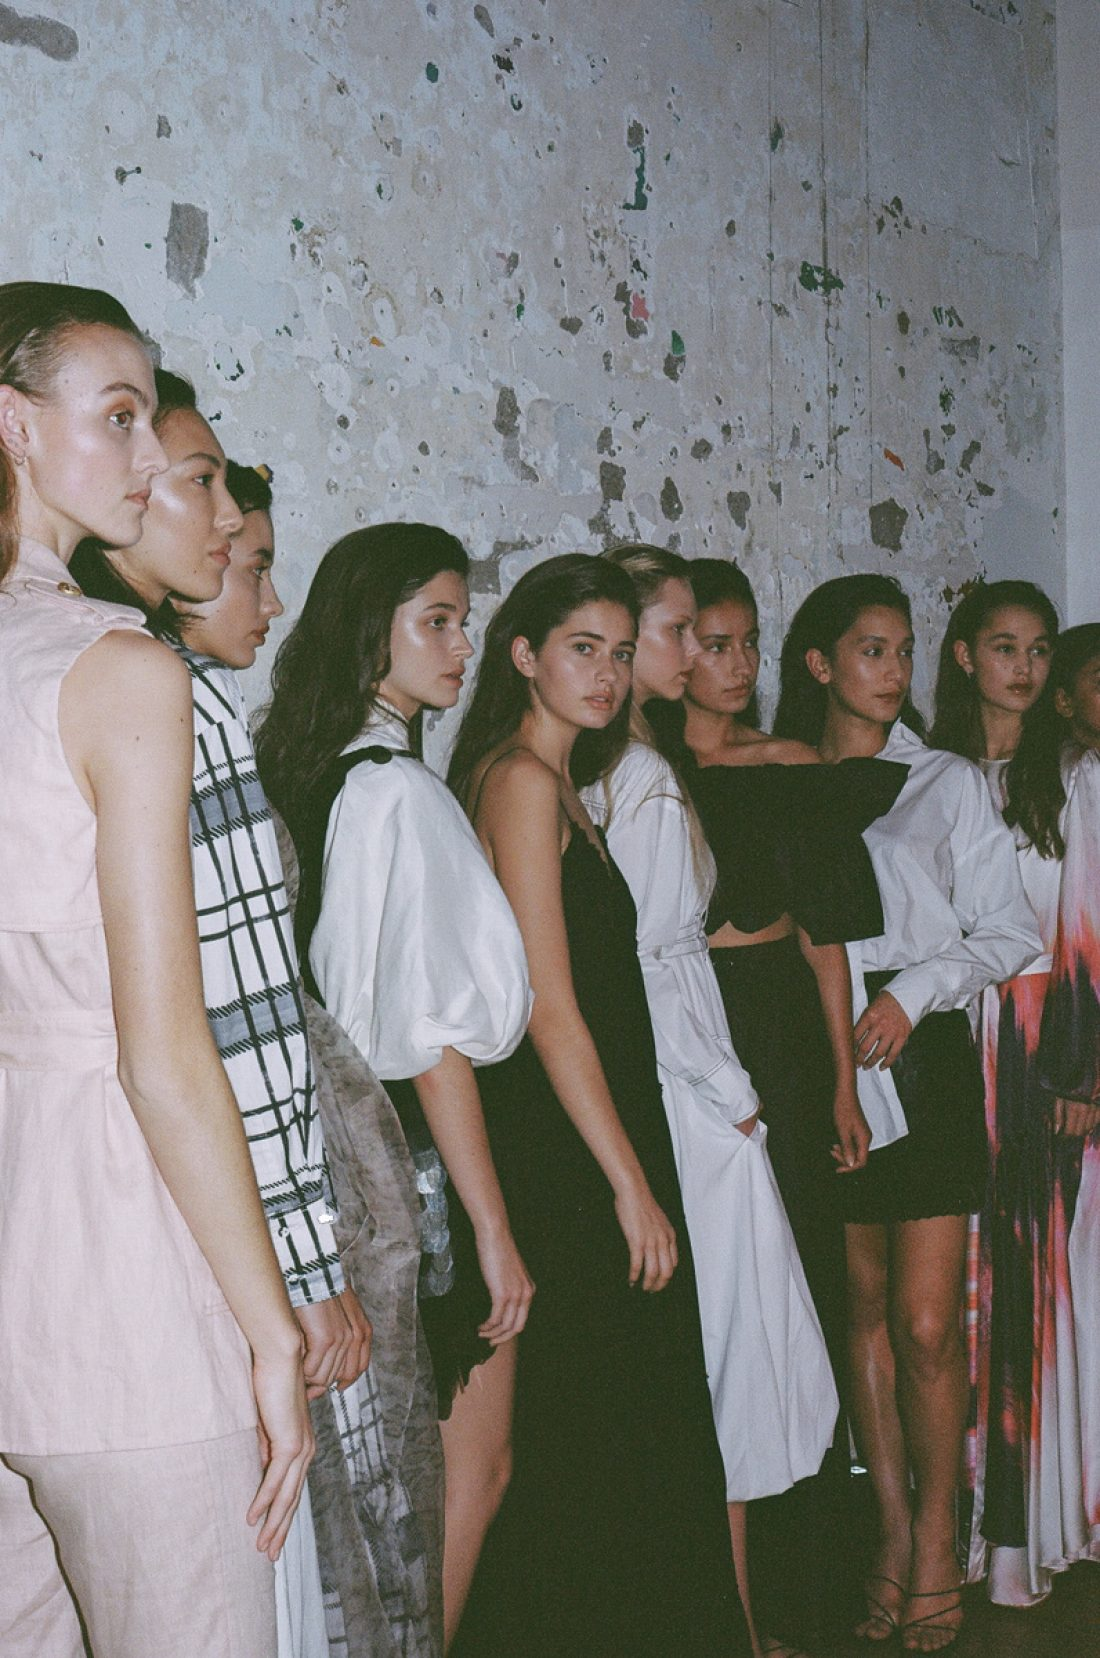 Aje Auckland Show/ Models: Brooklyn, Bernie, Rose, Zoe , Alaina, Francesca, Ruby, Erin, Katie photography by Adam Bryce